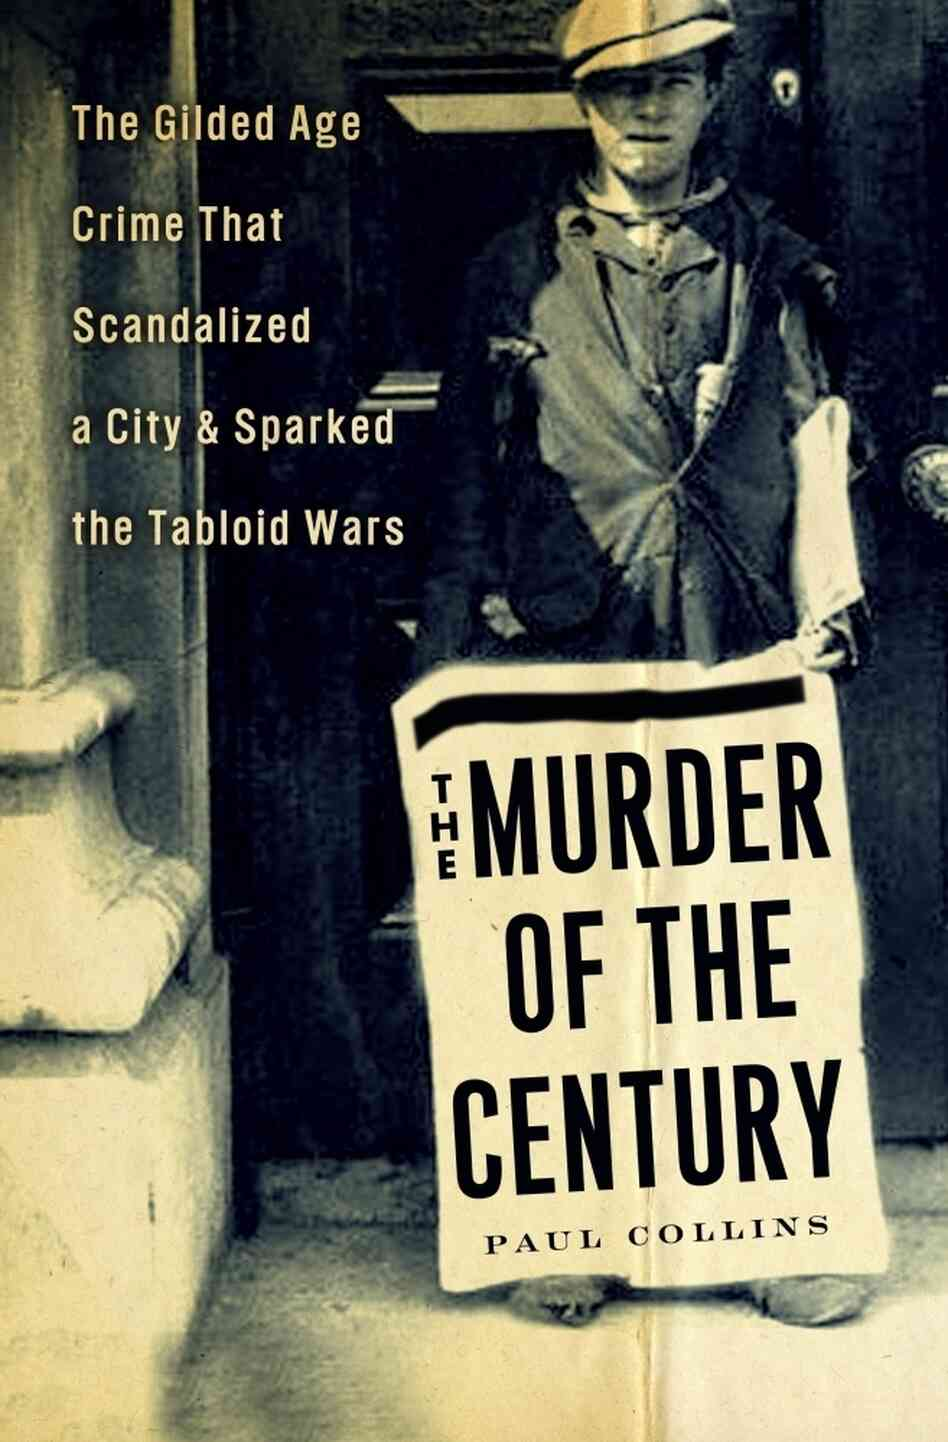 The Murder of the Century, by Paul Collins